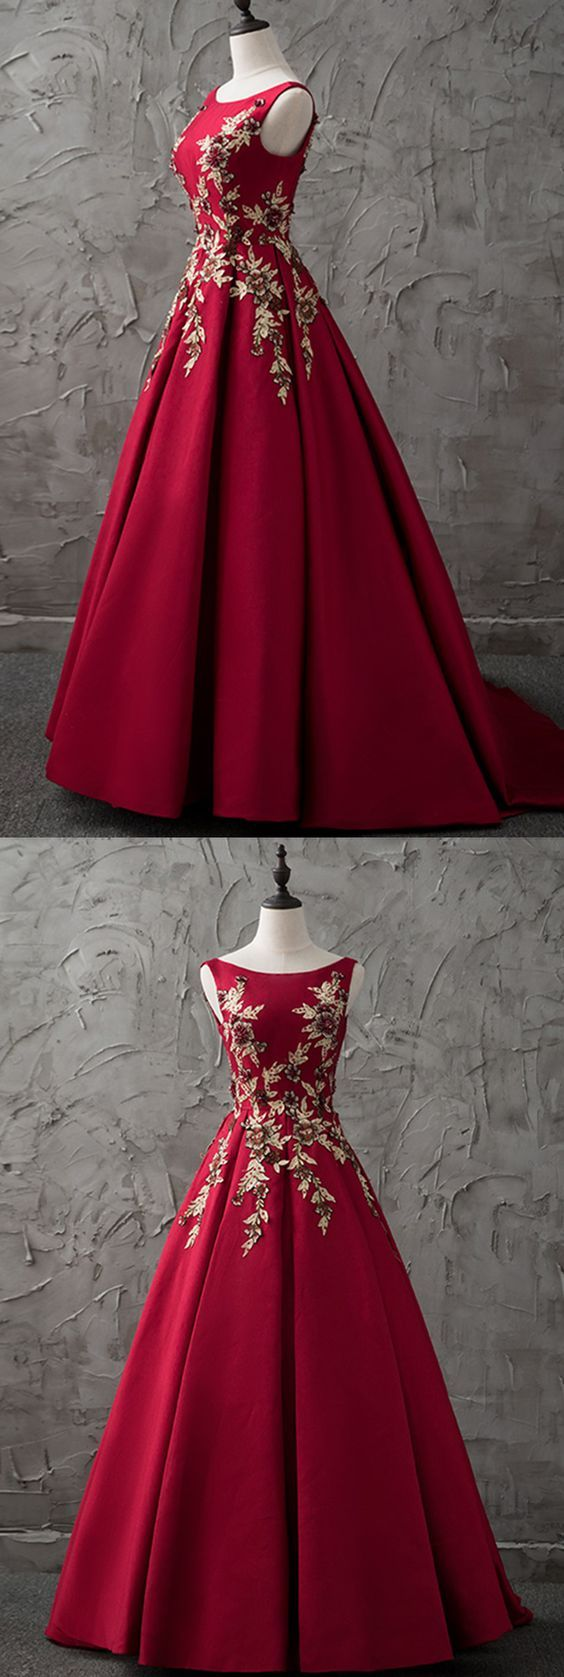 Burgundy Satin Modest Prom Dress, Long Satin Homecoming Dresses,Modern Prom Dresses,Party Dresses,Fashion Prom Dress,840336 #modestprom